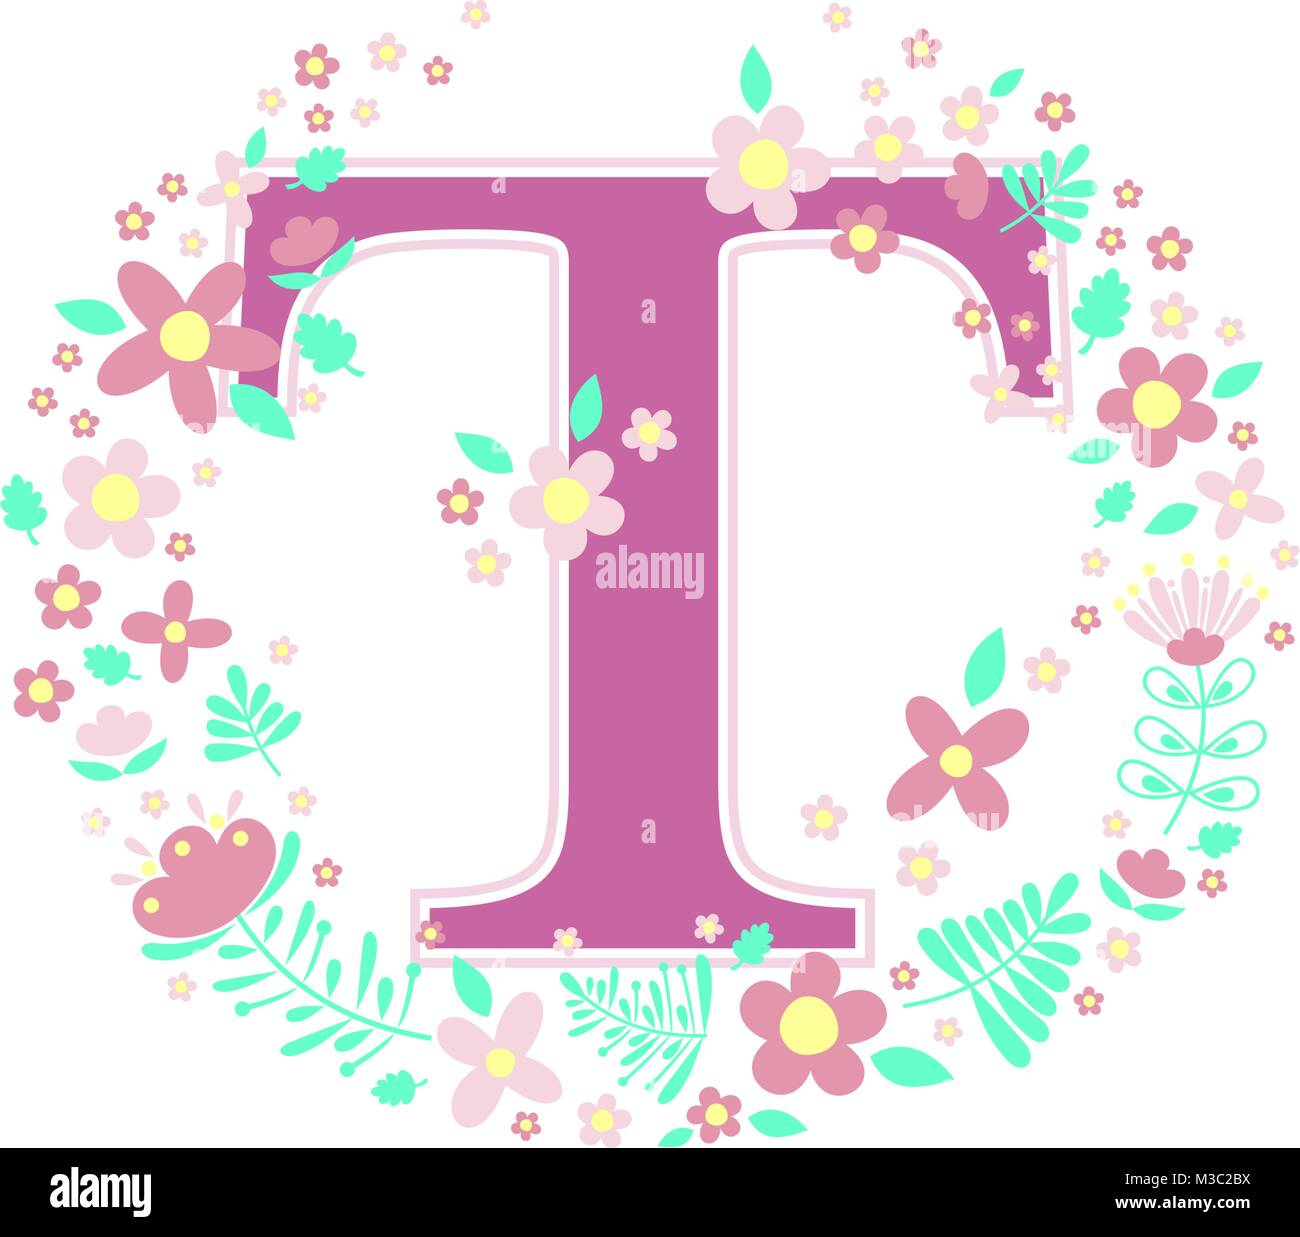 Initial Letter T With Decorative Flowers And Design Elements Isolated On White Background Can Be Used For Baby Name Nursery Decoration Spring Theme